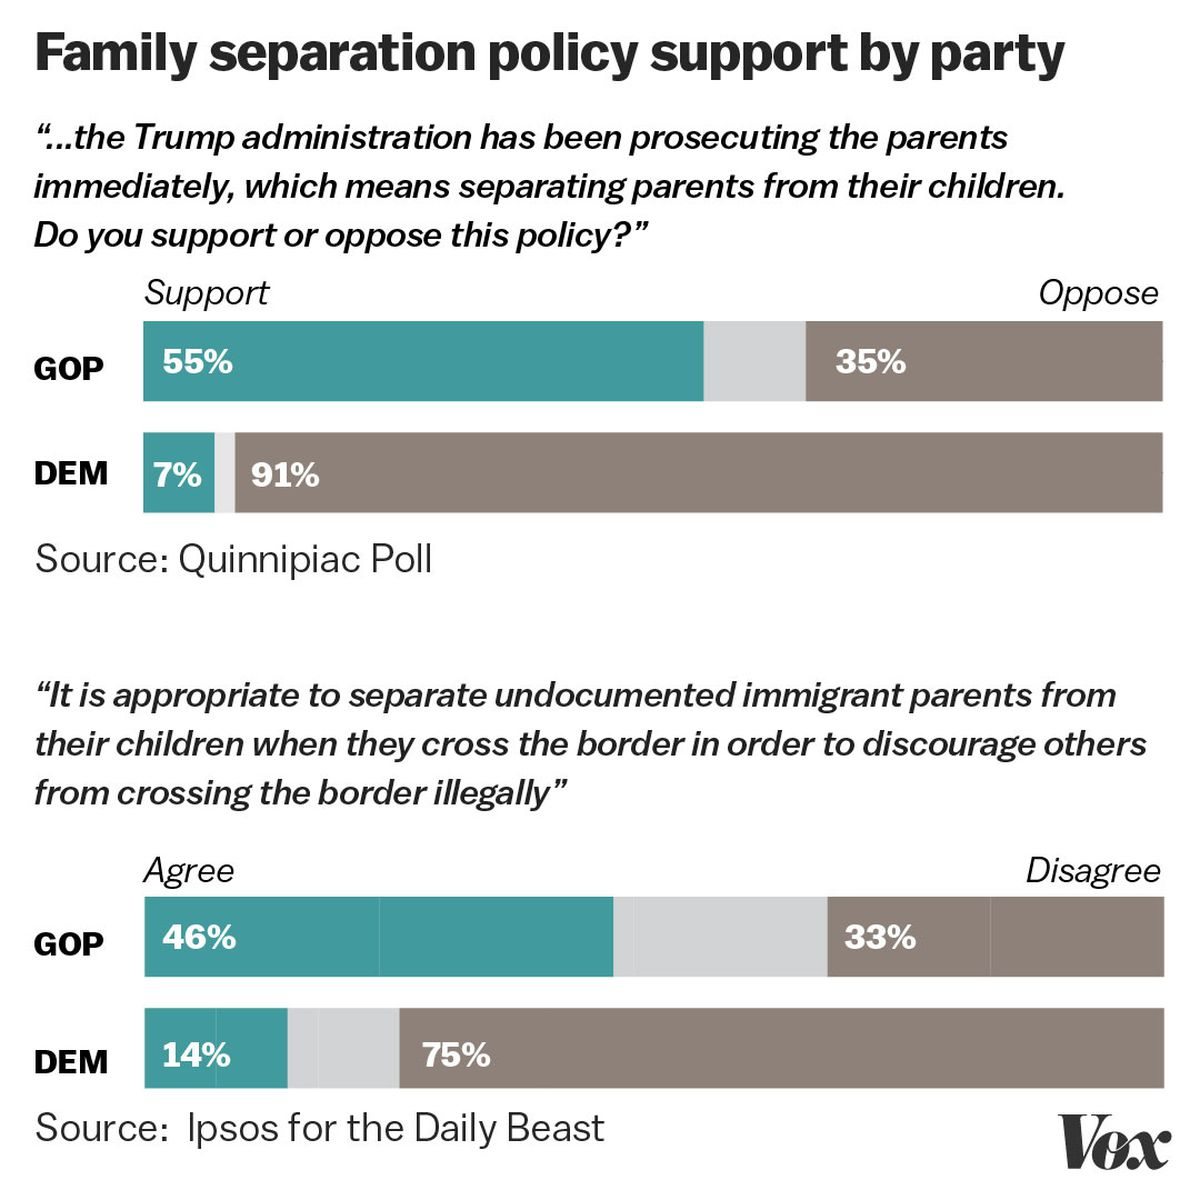 Policy Politics On Flipboard By Vox: The Border Family Separations Crisis Showed How Trump